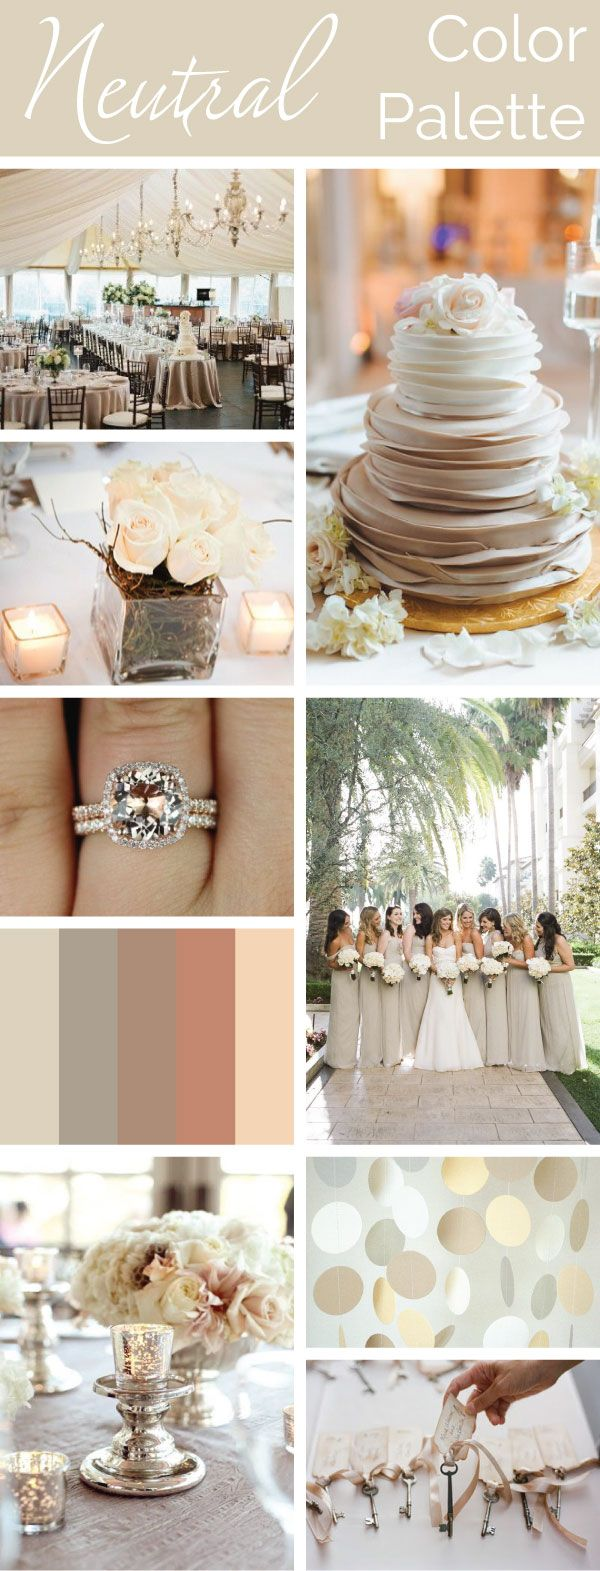 Neutral Color Palette: Simple, Elegant, Versatile.